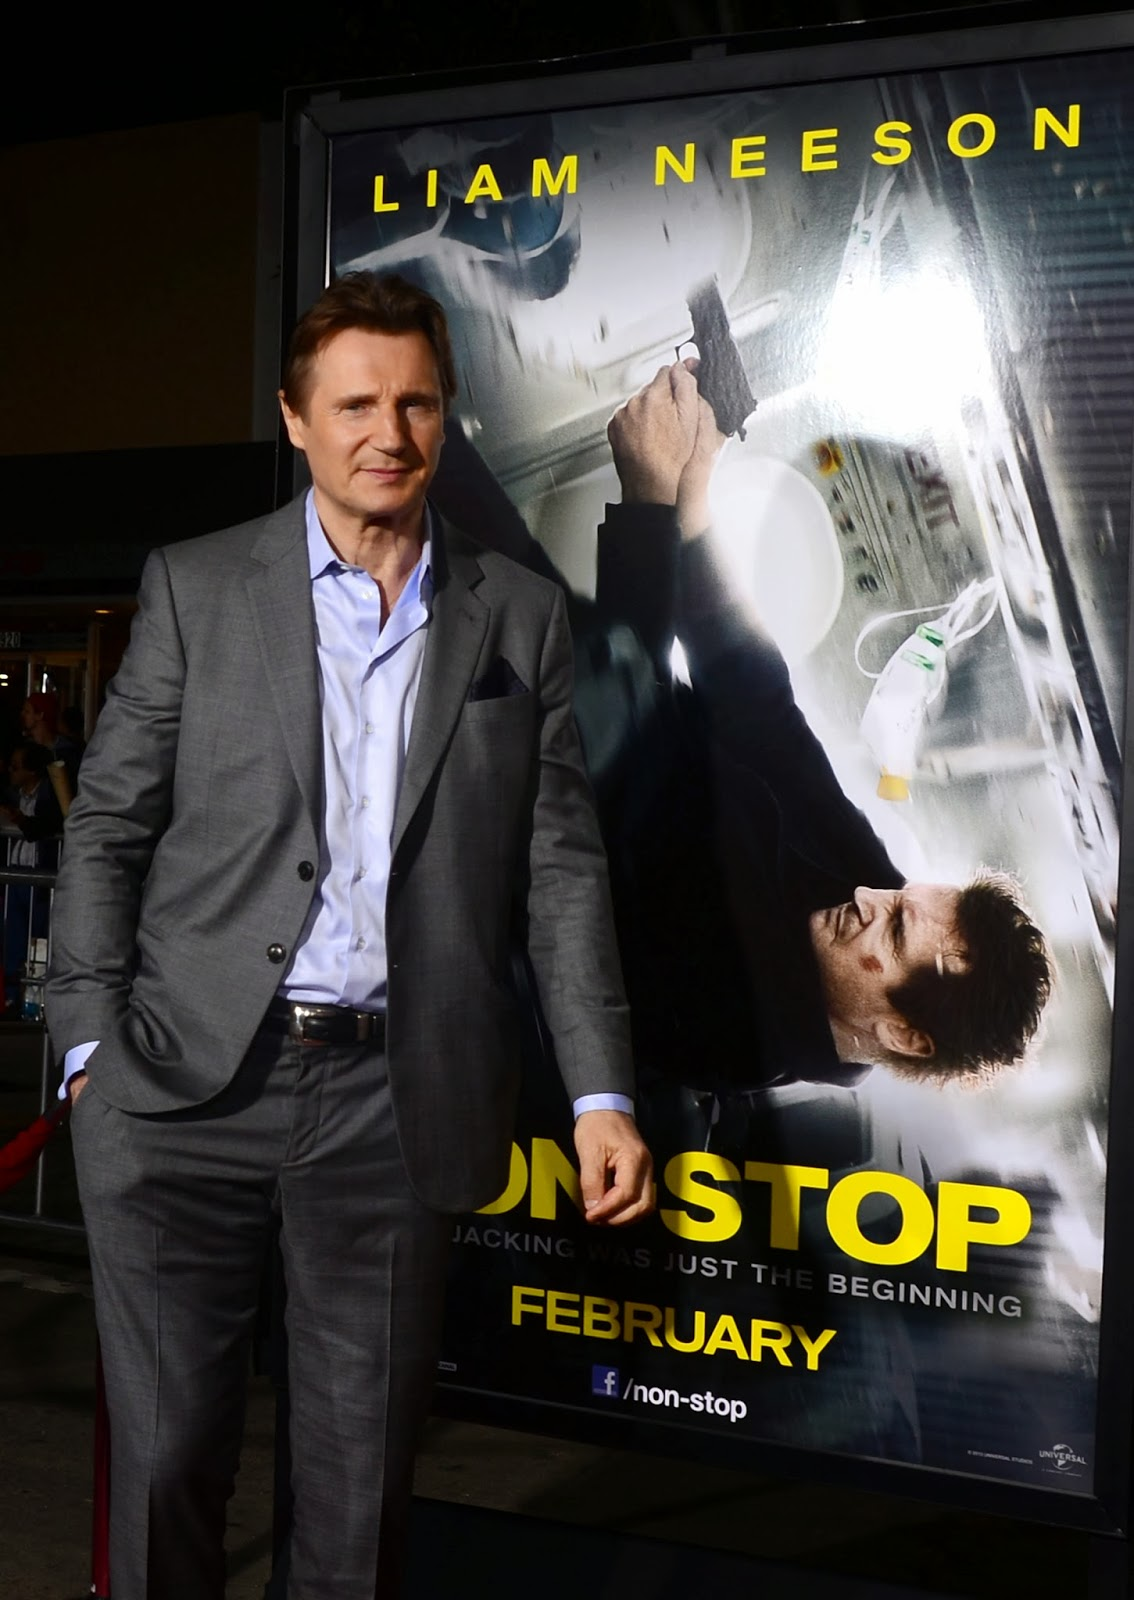 2014 movies, Anson Mount, Cast, Film, France, Hollywood, Julianne Moore, Liam Neeson, Los Angeles, Lupita Nyong'o, Michelle Dockery, Movie Premiere, Movies, Non-Stop, Premiere, Scoot McNairy, Showbiz, Starring,